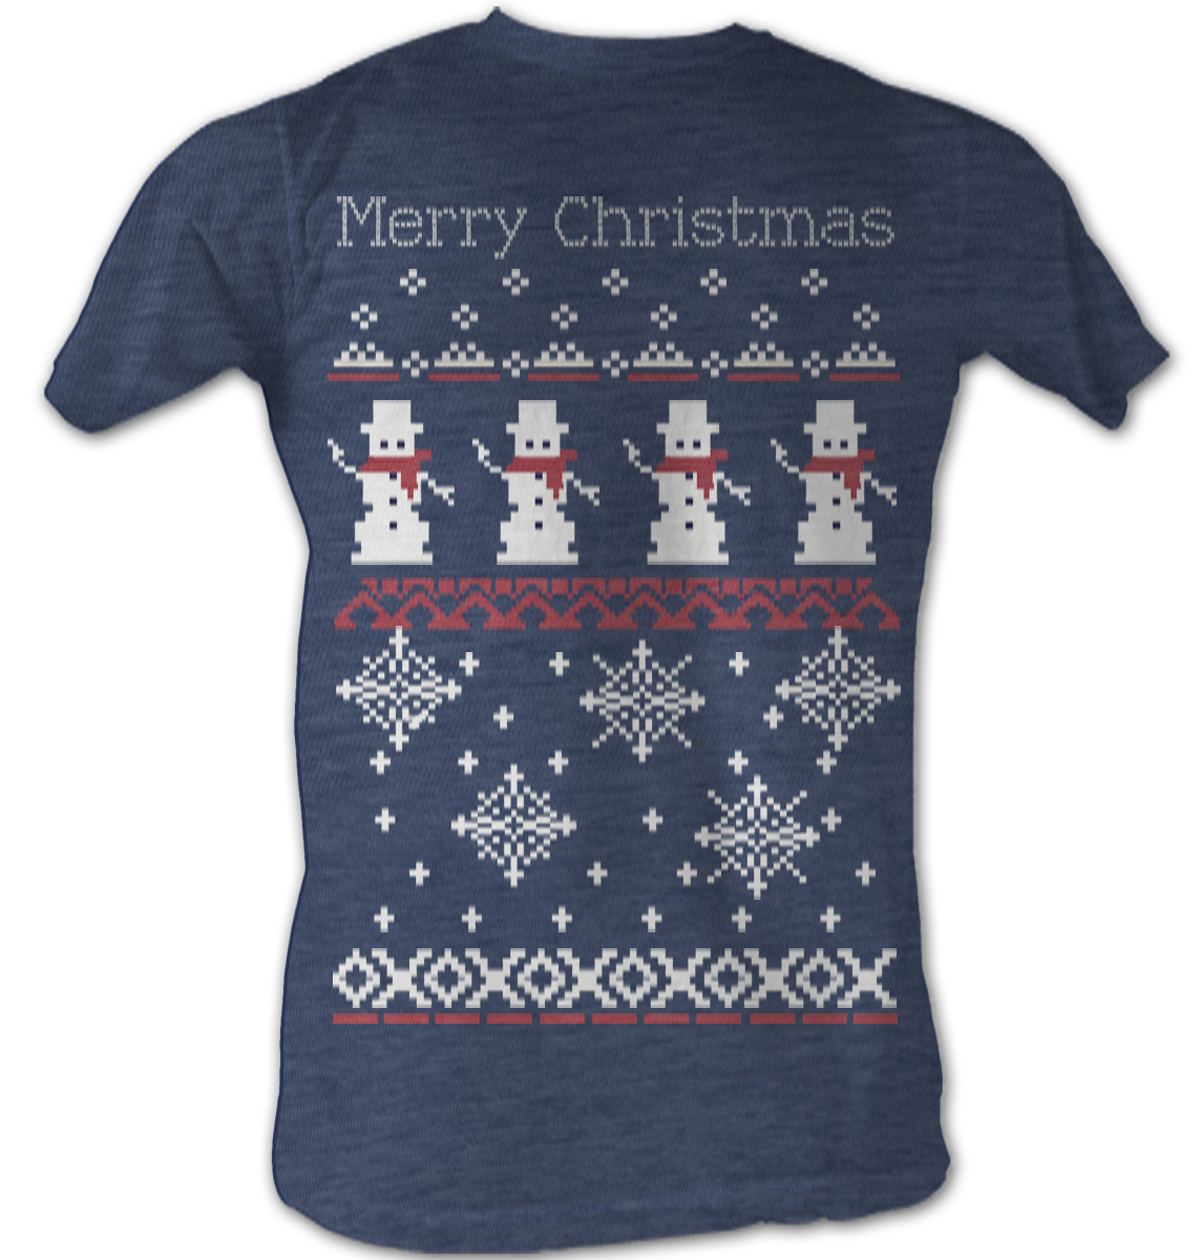 Snowman t shirt sweater christmas holiday adult